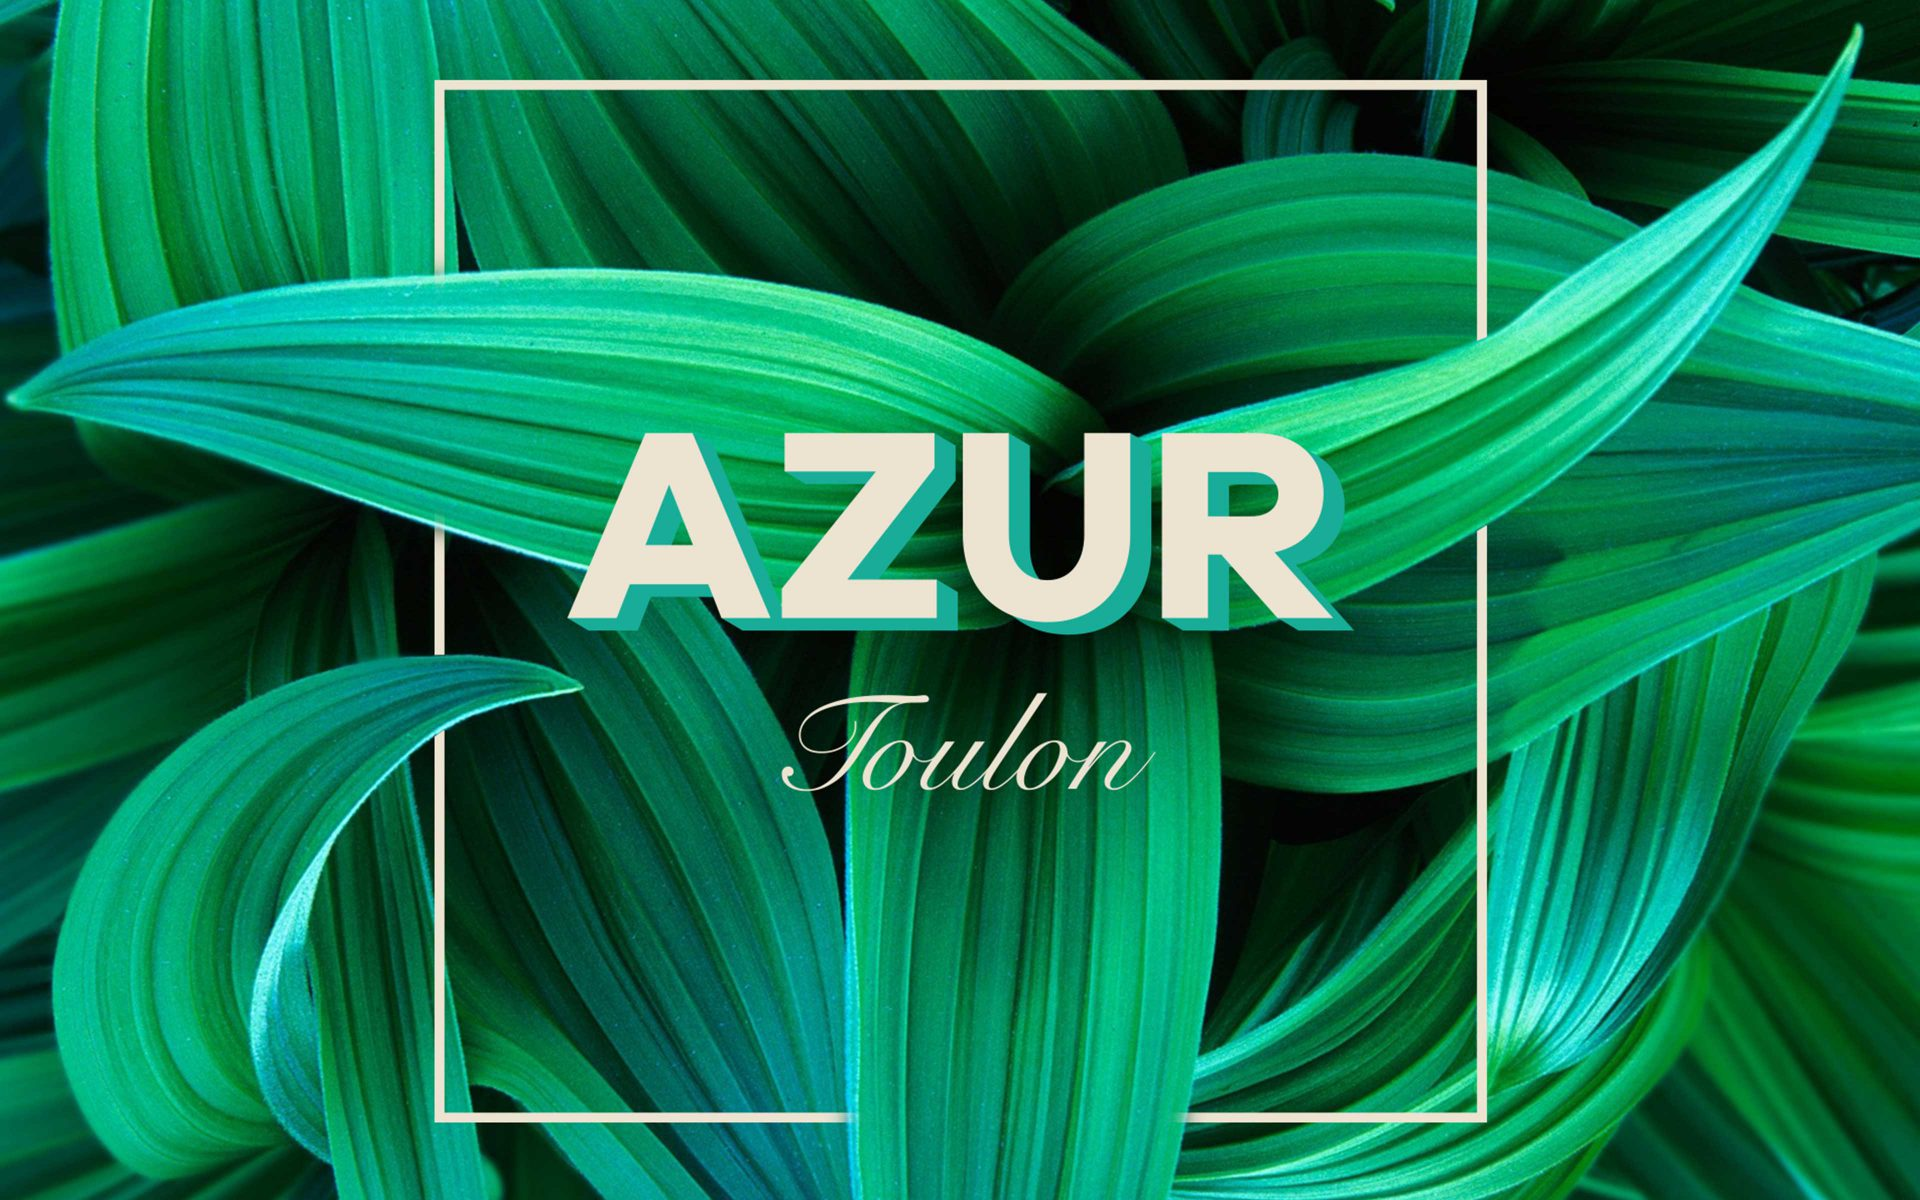 AZUR Toulon, luxurious brand logo and leafy design by DIFFER